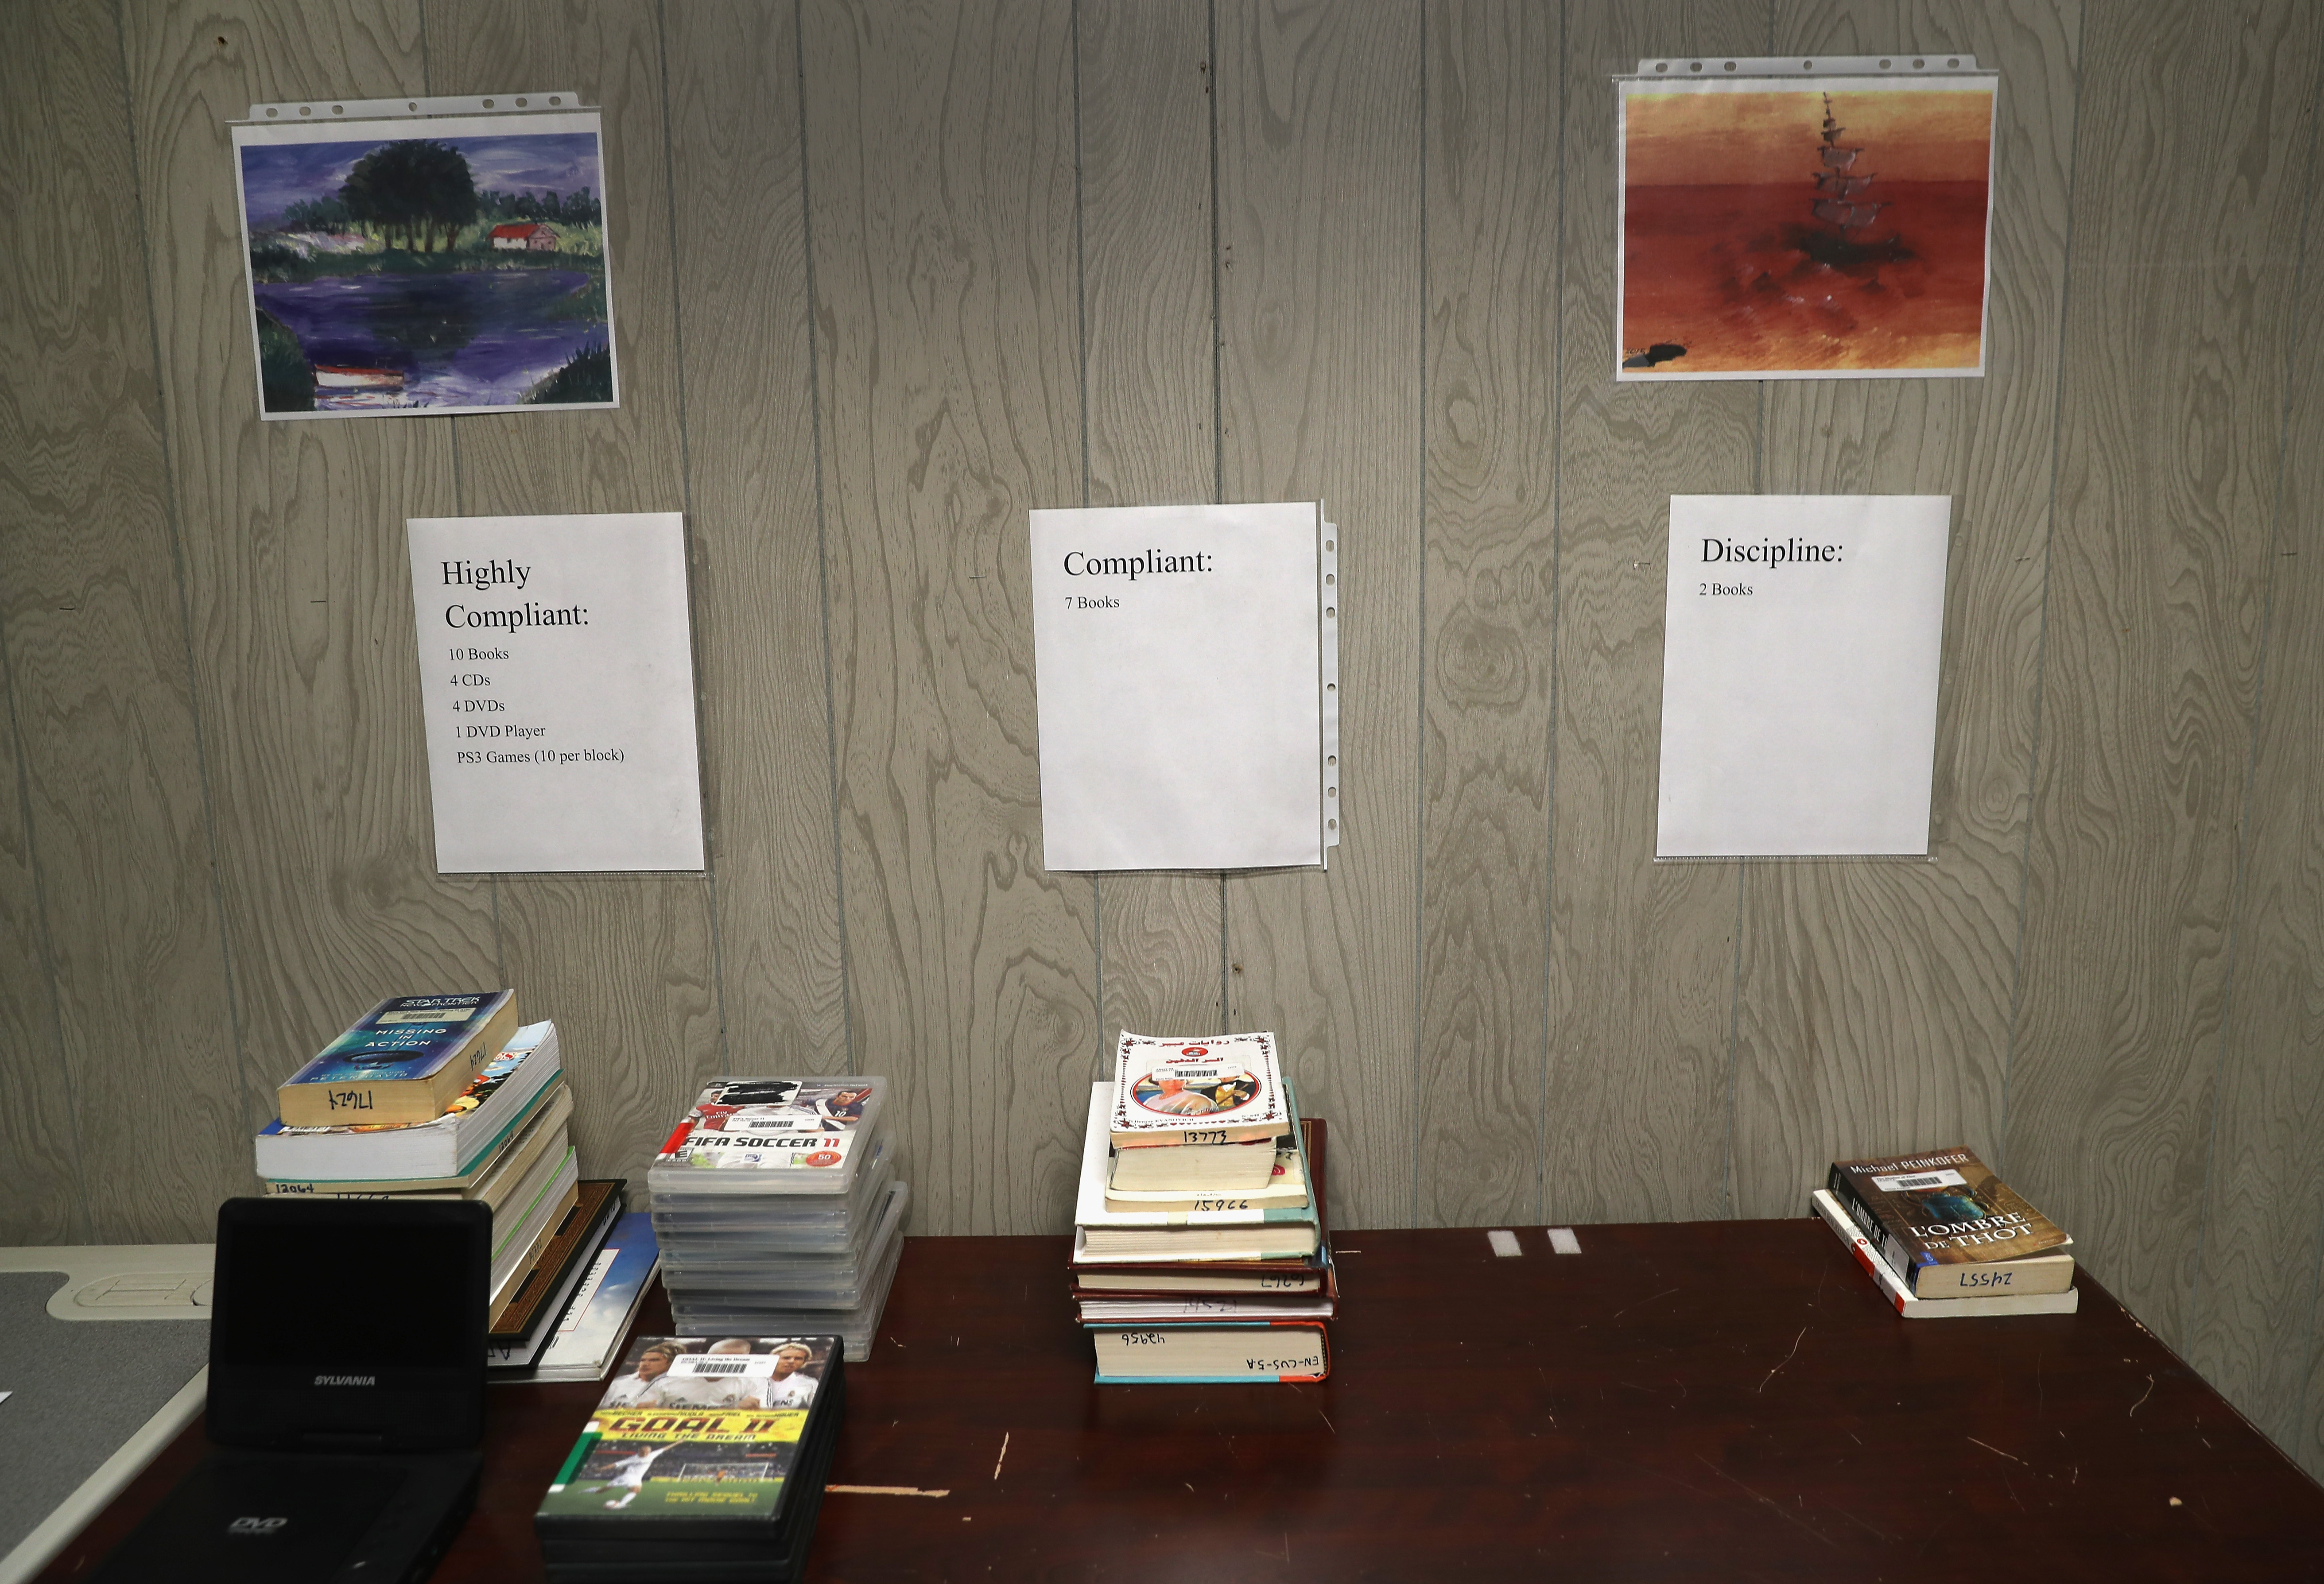 Reading materials and DVDs, including guidelines for distribution to prisoners, are displayed in the library of the Guantanamo Bay Detention Center on Oct. 22, 2016.